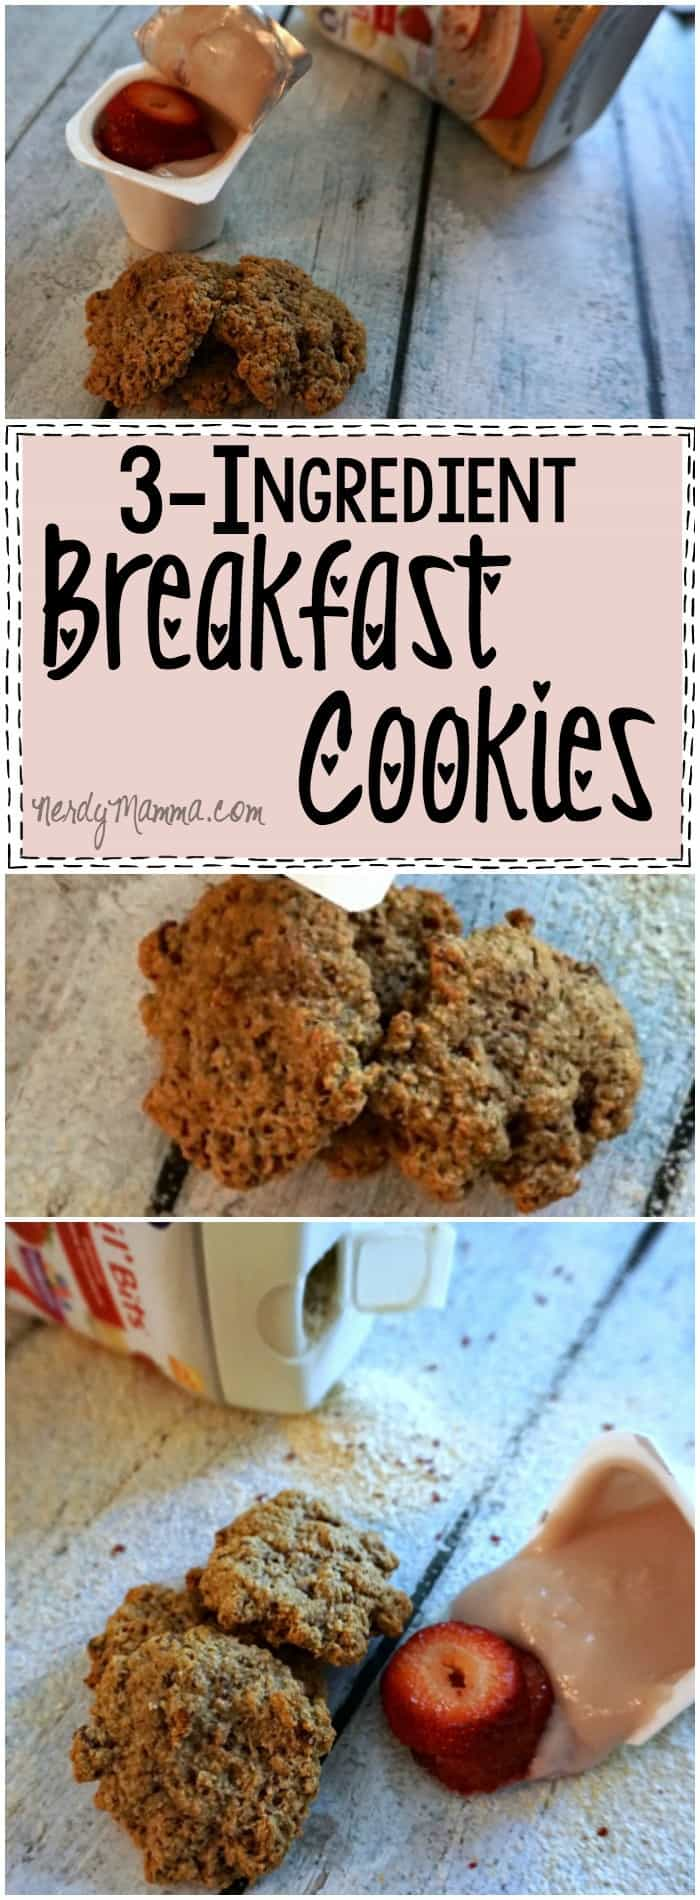 These 3-Ingredient Breakfast Cookies are so easy! I love how these are so simple...but have so many good vitamins and minerals. Awesome!